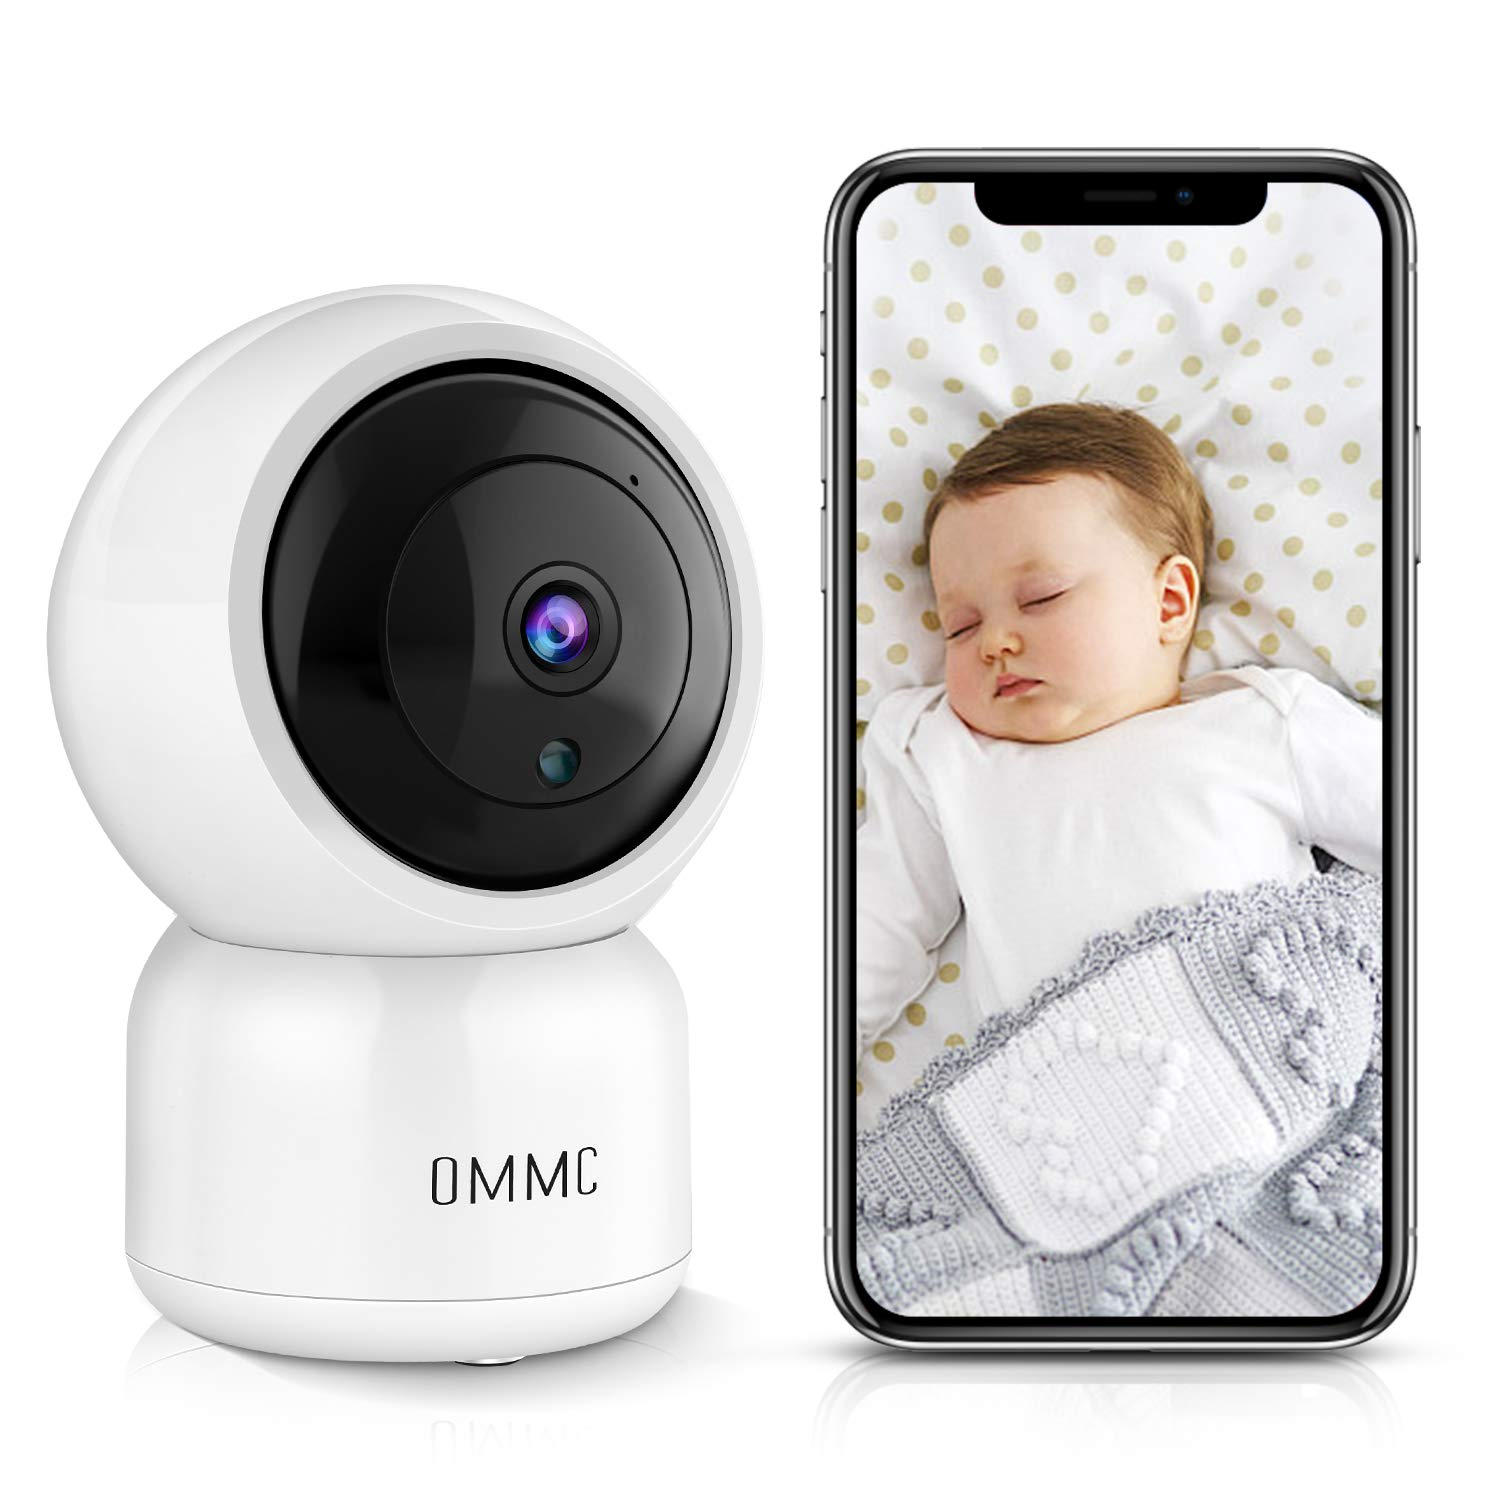 OMMC Wireless Security Camera, 1080P Home IP Camera Baby Monitor with Night Vision/2-Way Audio/Motion Detection,Works with Alexa